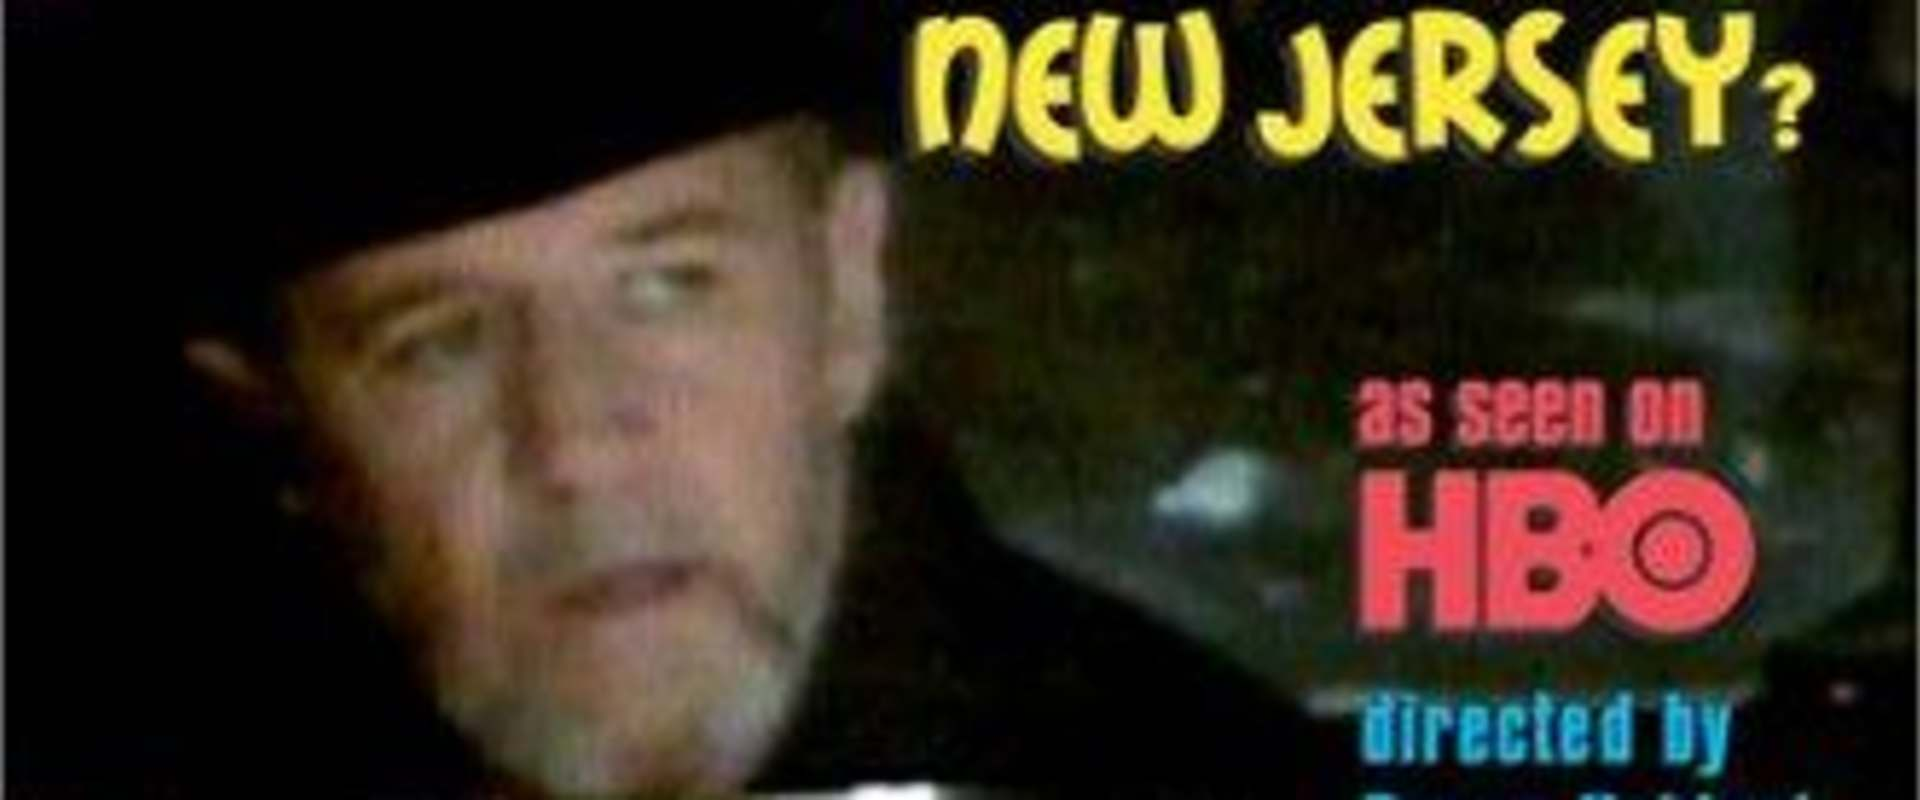 George Carlin: What Am I Doing in New Jersey? background 2